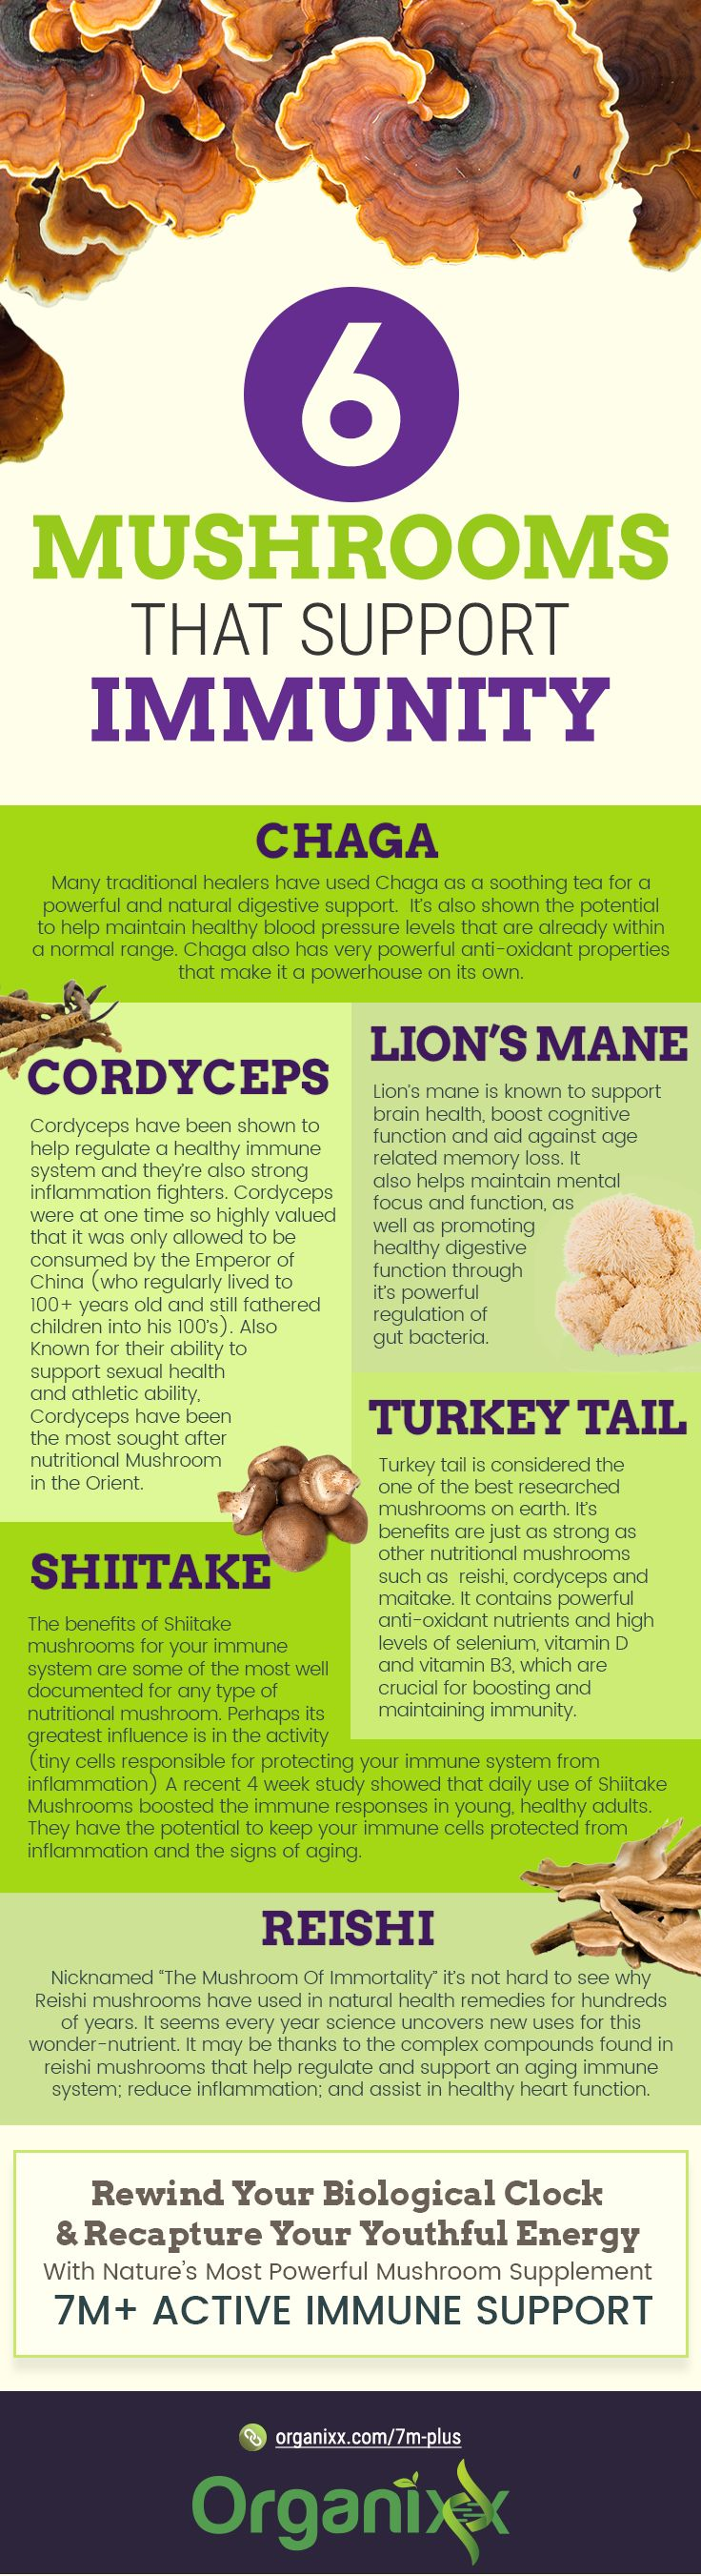 STAYING YOUNG: Rewind your biological clock and recapture your youthful energy. Are you familiar with these 4 mushrooms that support immunity? Reishi, Shiitake, Turkey Tail, Cordyceps, Lions Mane and Chaga Mushroom. Click on the graphic above to read on and discover more about this topic.    How to use medicinal mushrooms   mushroom health benefits   health benefits of mushrooms   #organixx #organixxhealthtips